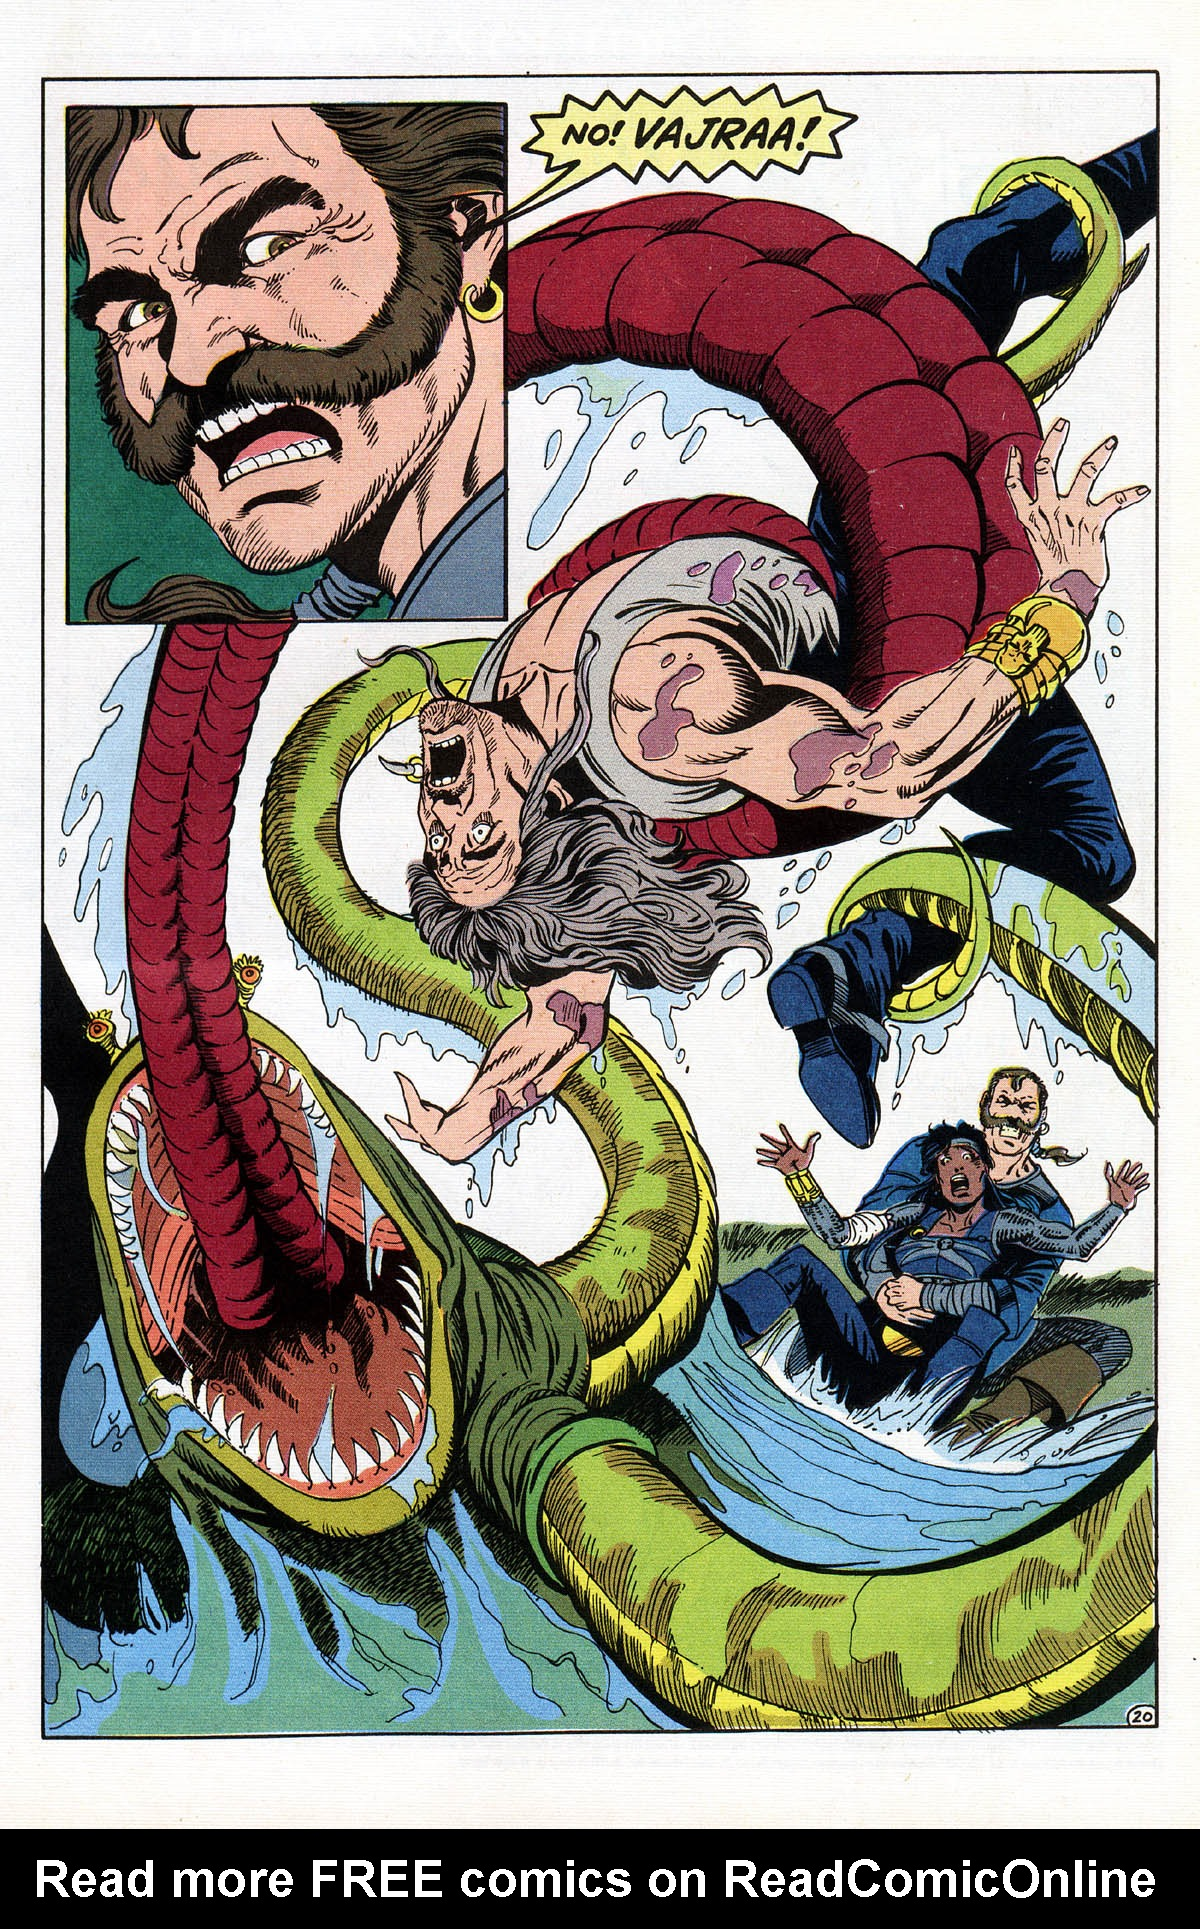 Read online Advanced Dungeons & Dragons comic -  Issue #16 - 24